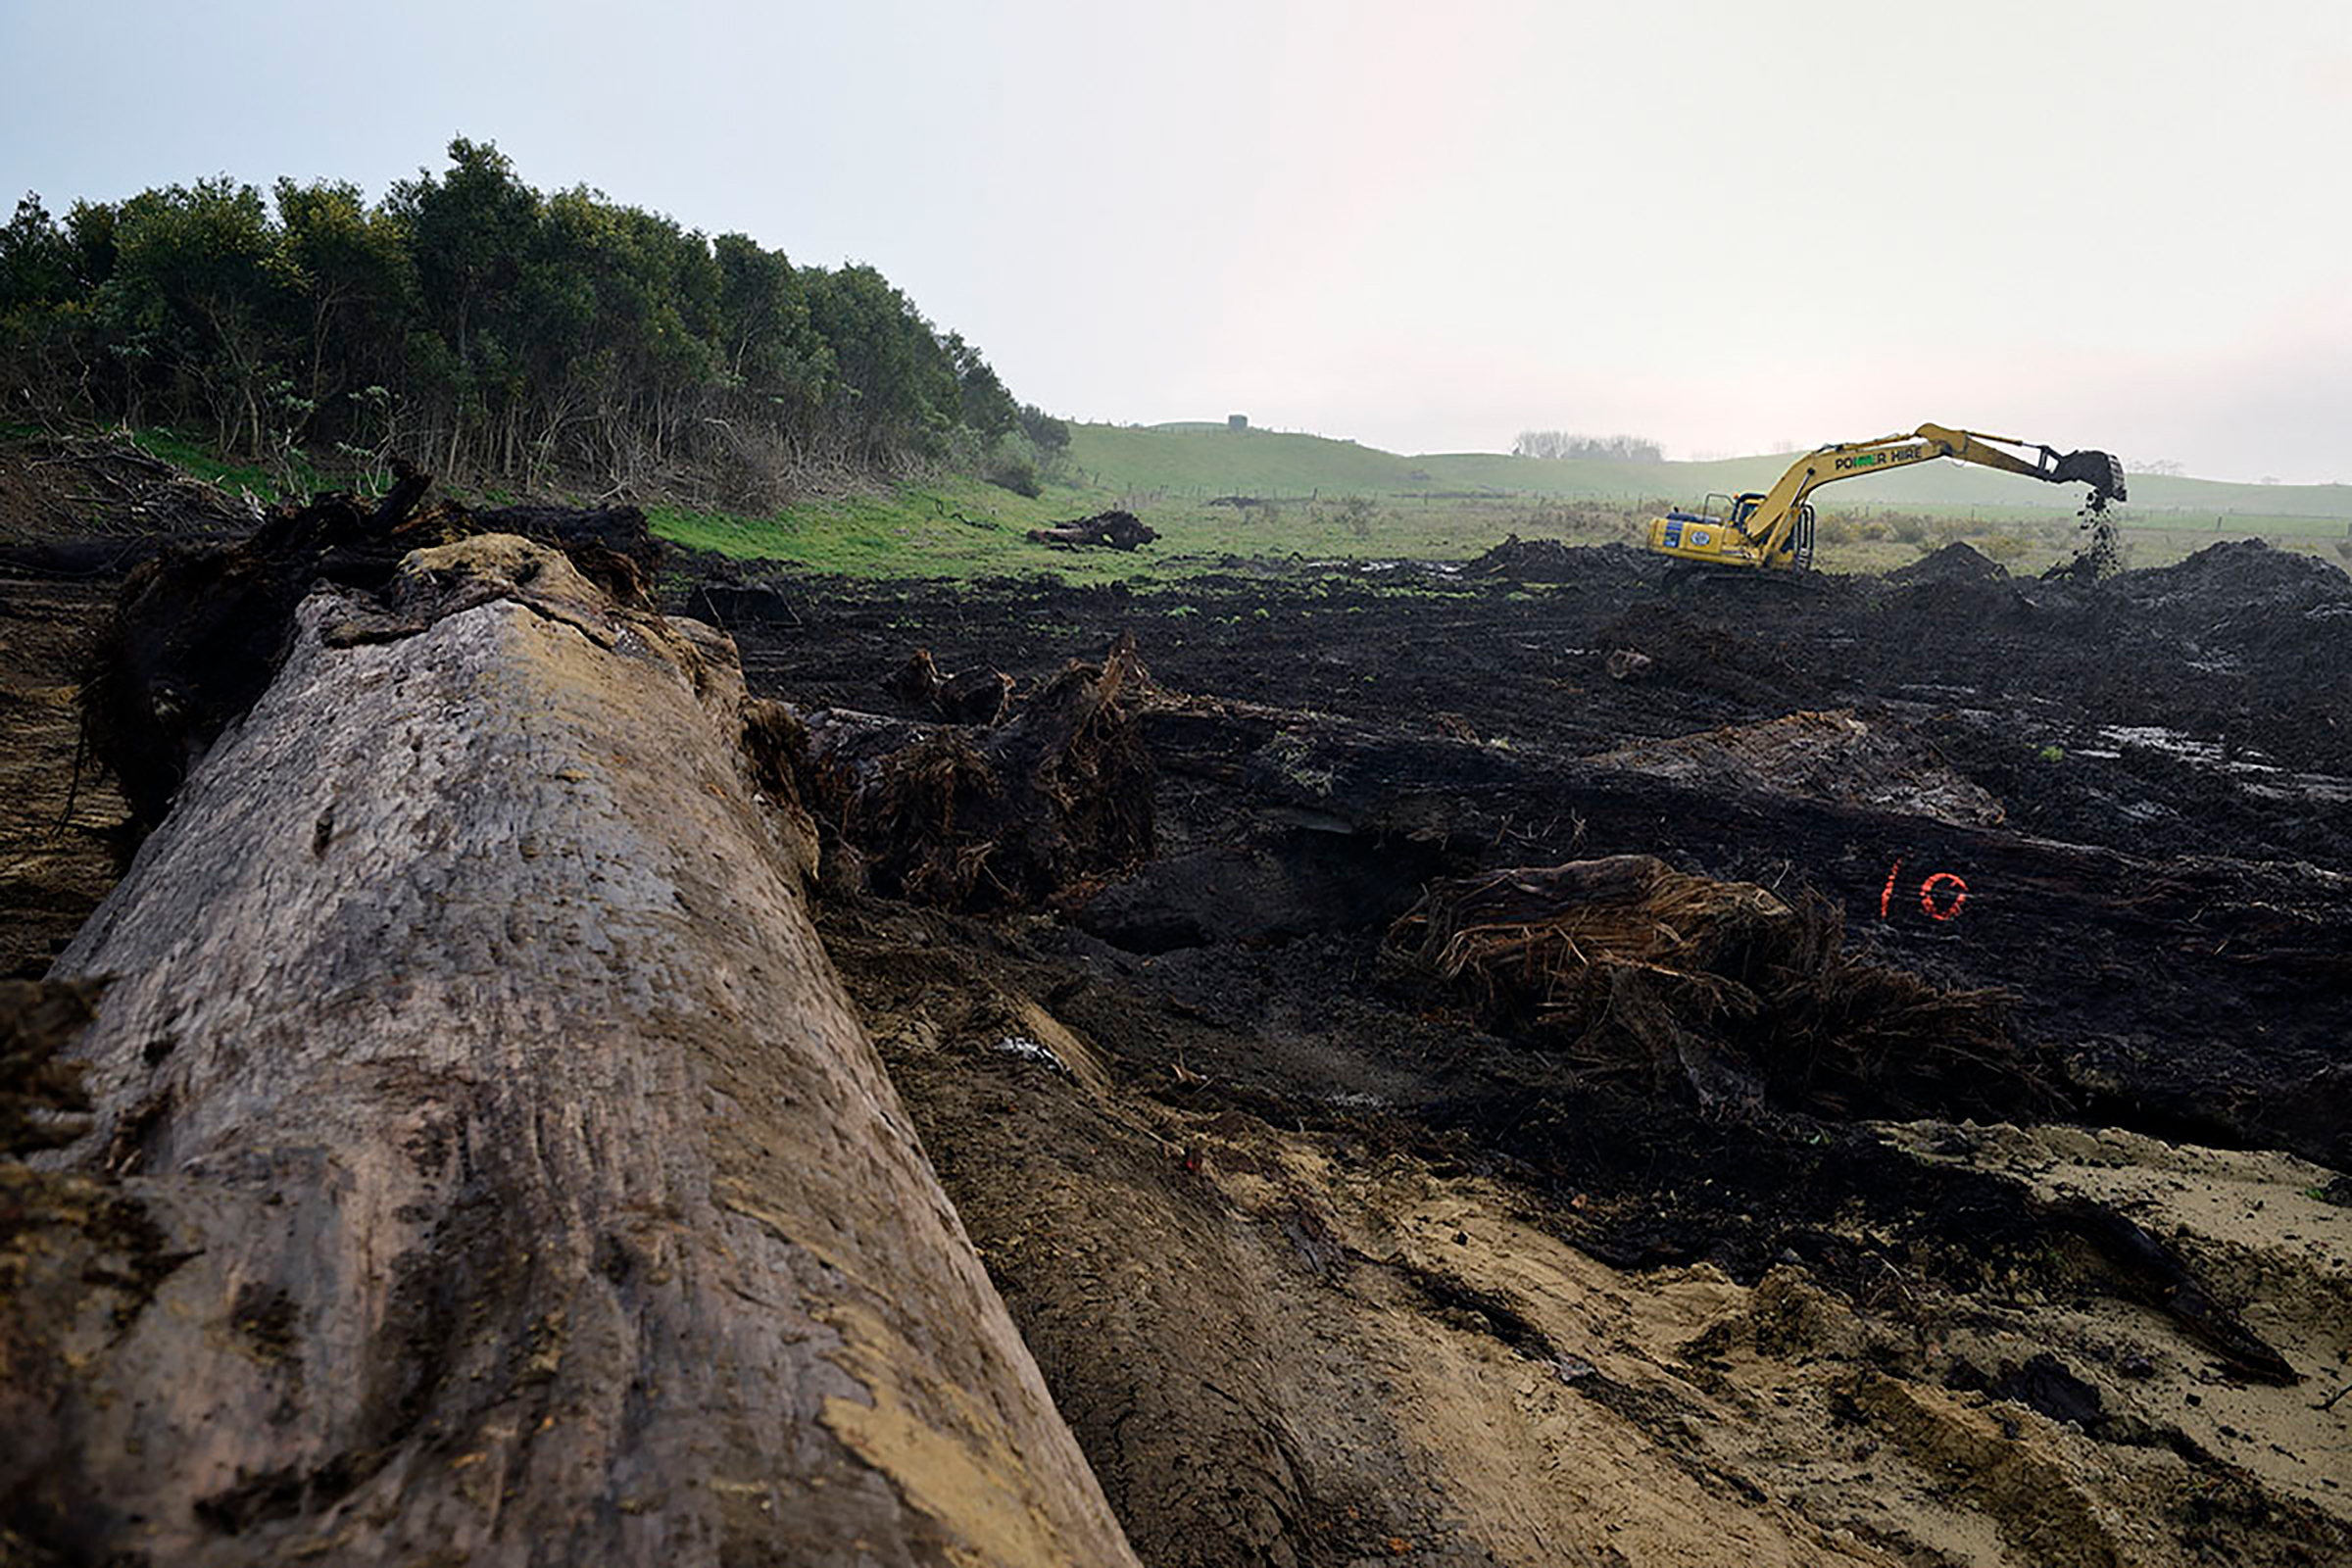 Swamp kauri extractors dig for the buried logs in a farm paddock in Northland, hoping to sell the timber on the international market. Photograph by Arno Gasteiger.